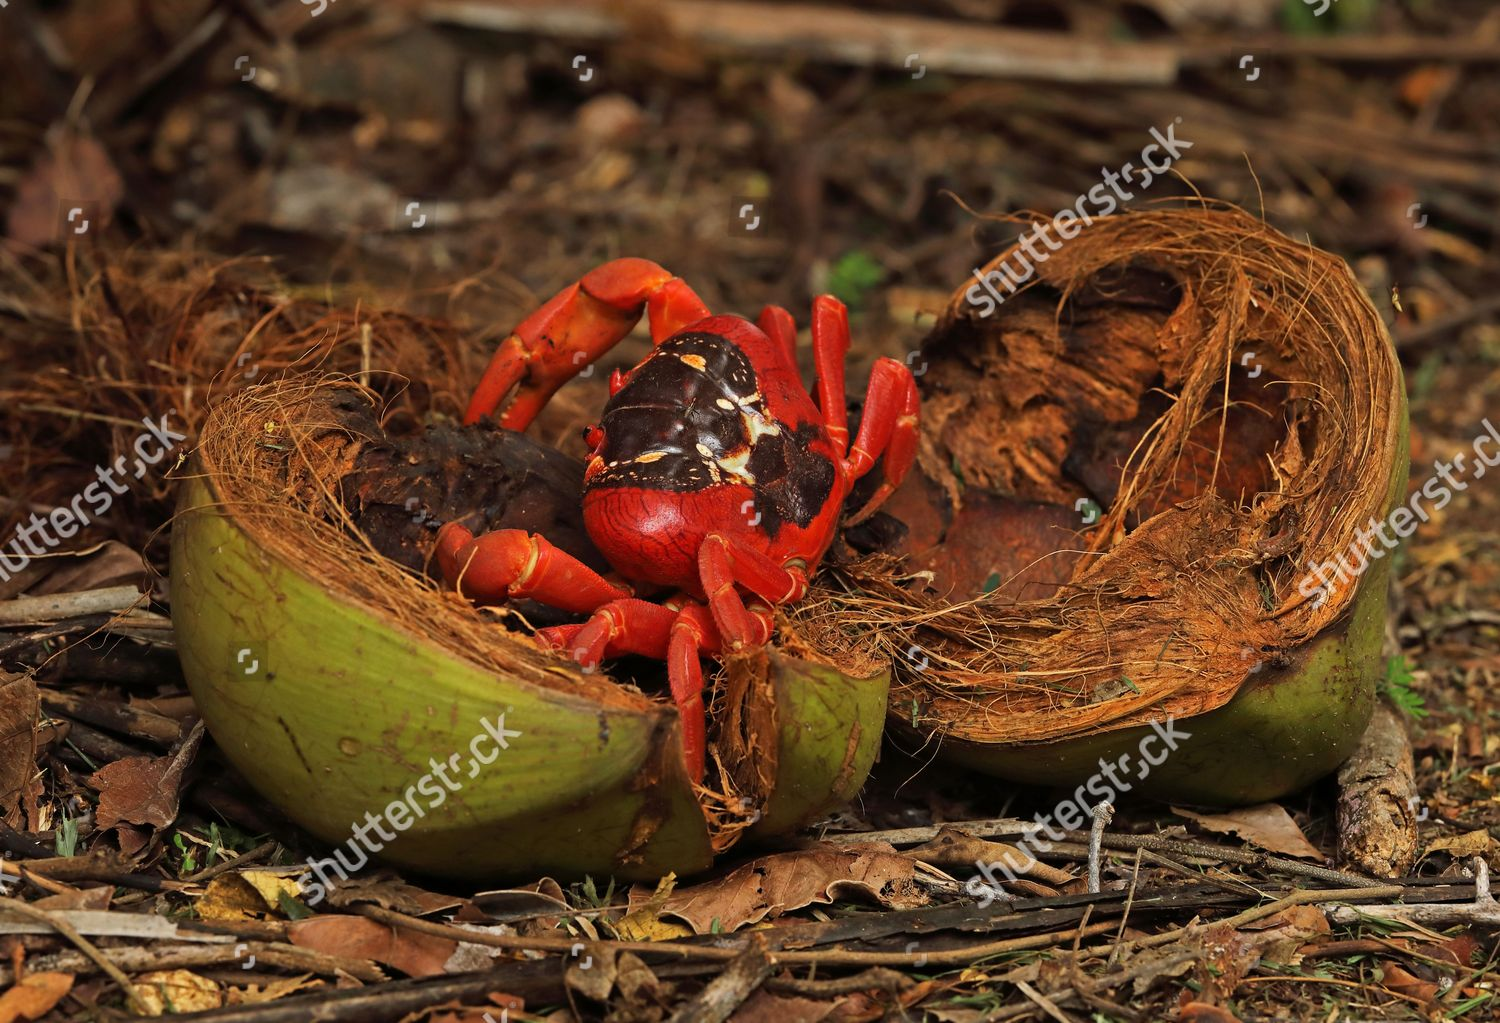 Christmas Island Red Crab.Christmas Island Red Crab Gecarcoidea Natalis Adult